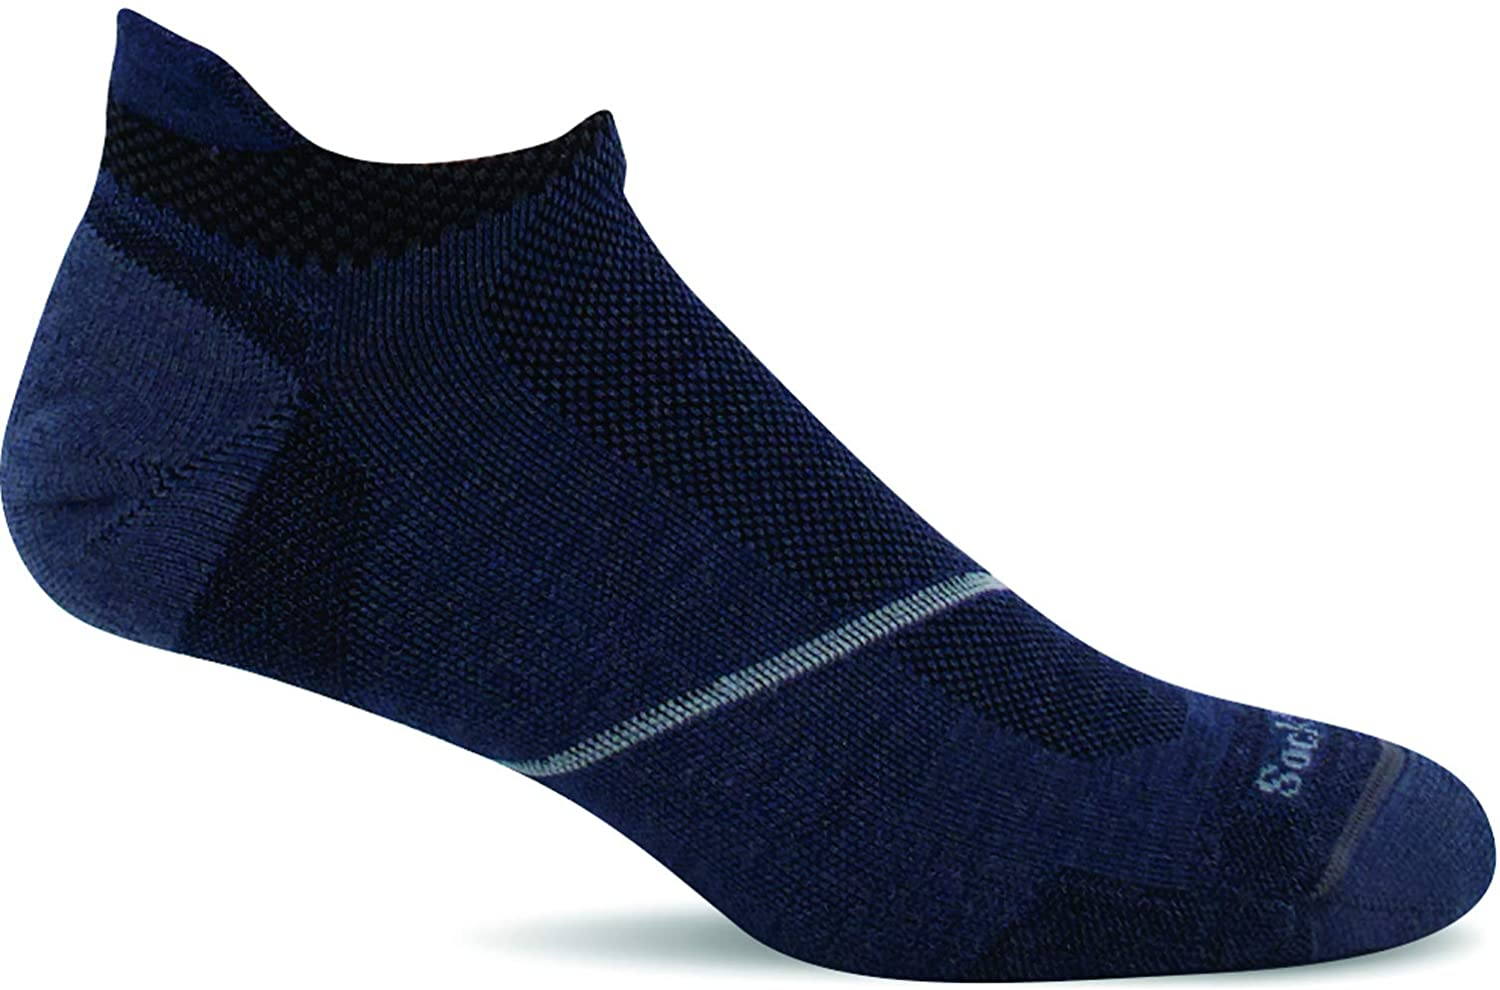 Men's Sockwell Pulse Micro Firm Compression Sock in Denim